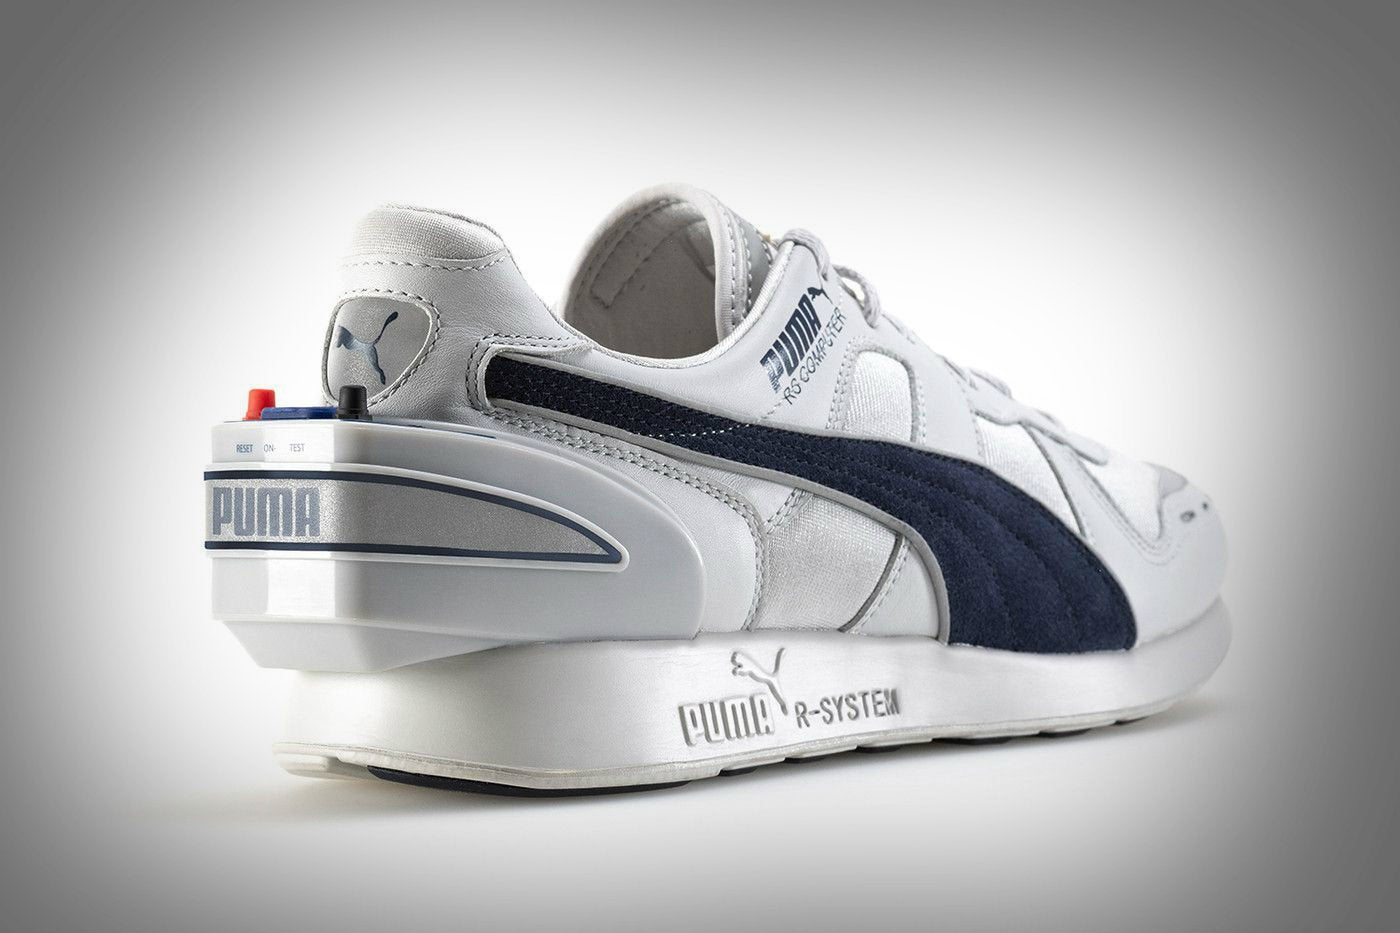 Puma rereleasing 1986's RS-Computer Shoe is so majestic it hurts